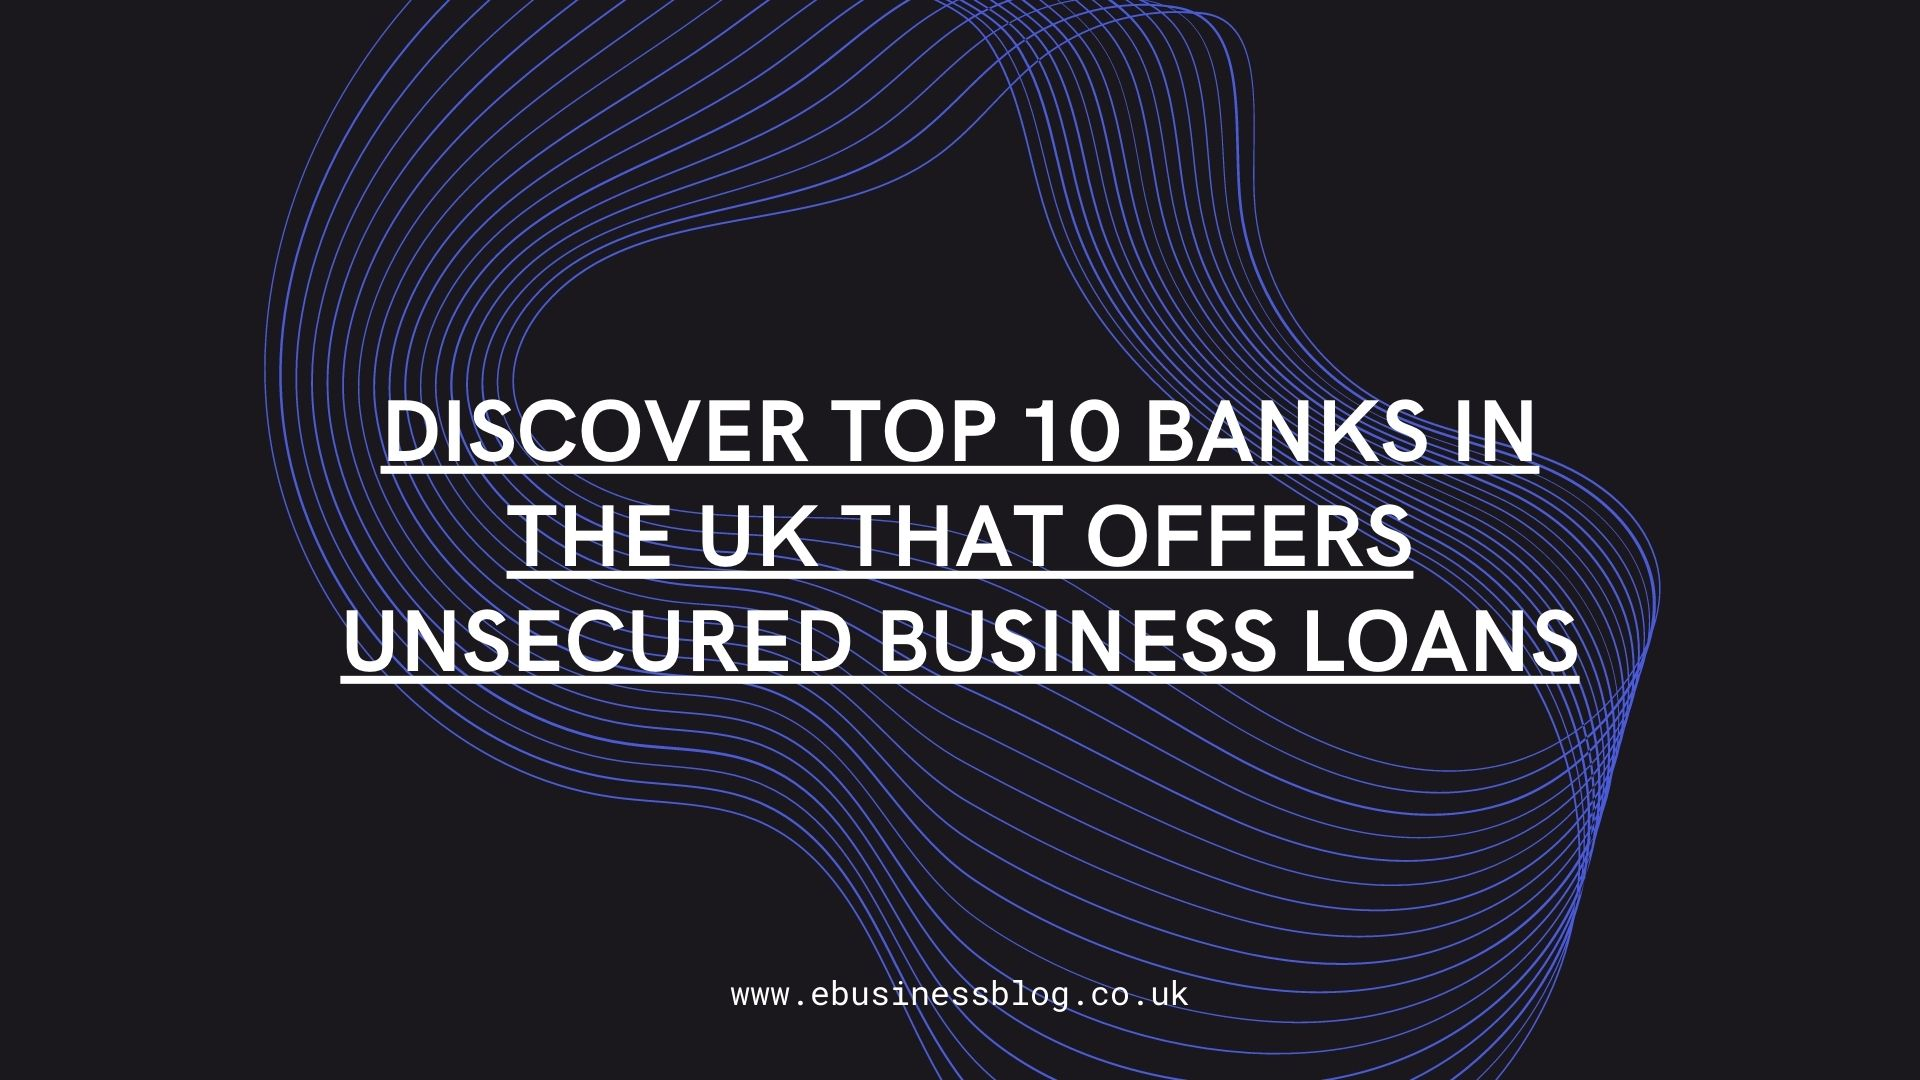 Discover Top 10 Banks in the UK that Offers Unsecured Business Loans